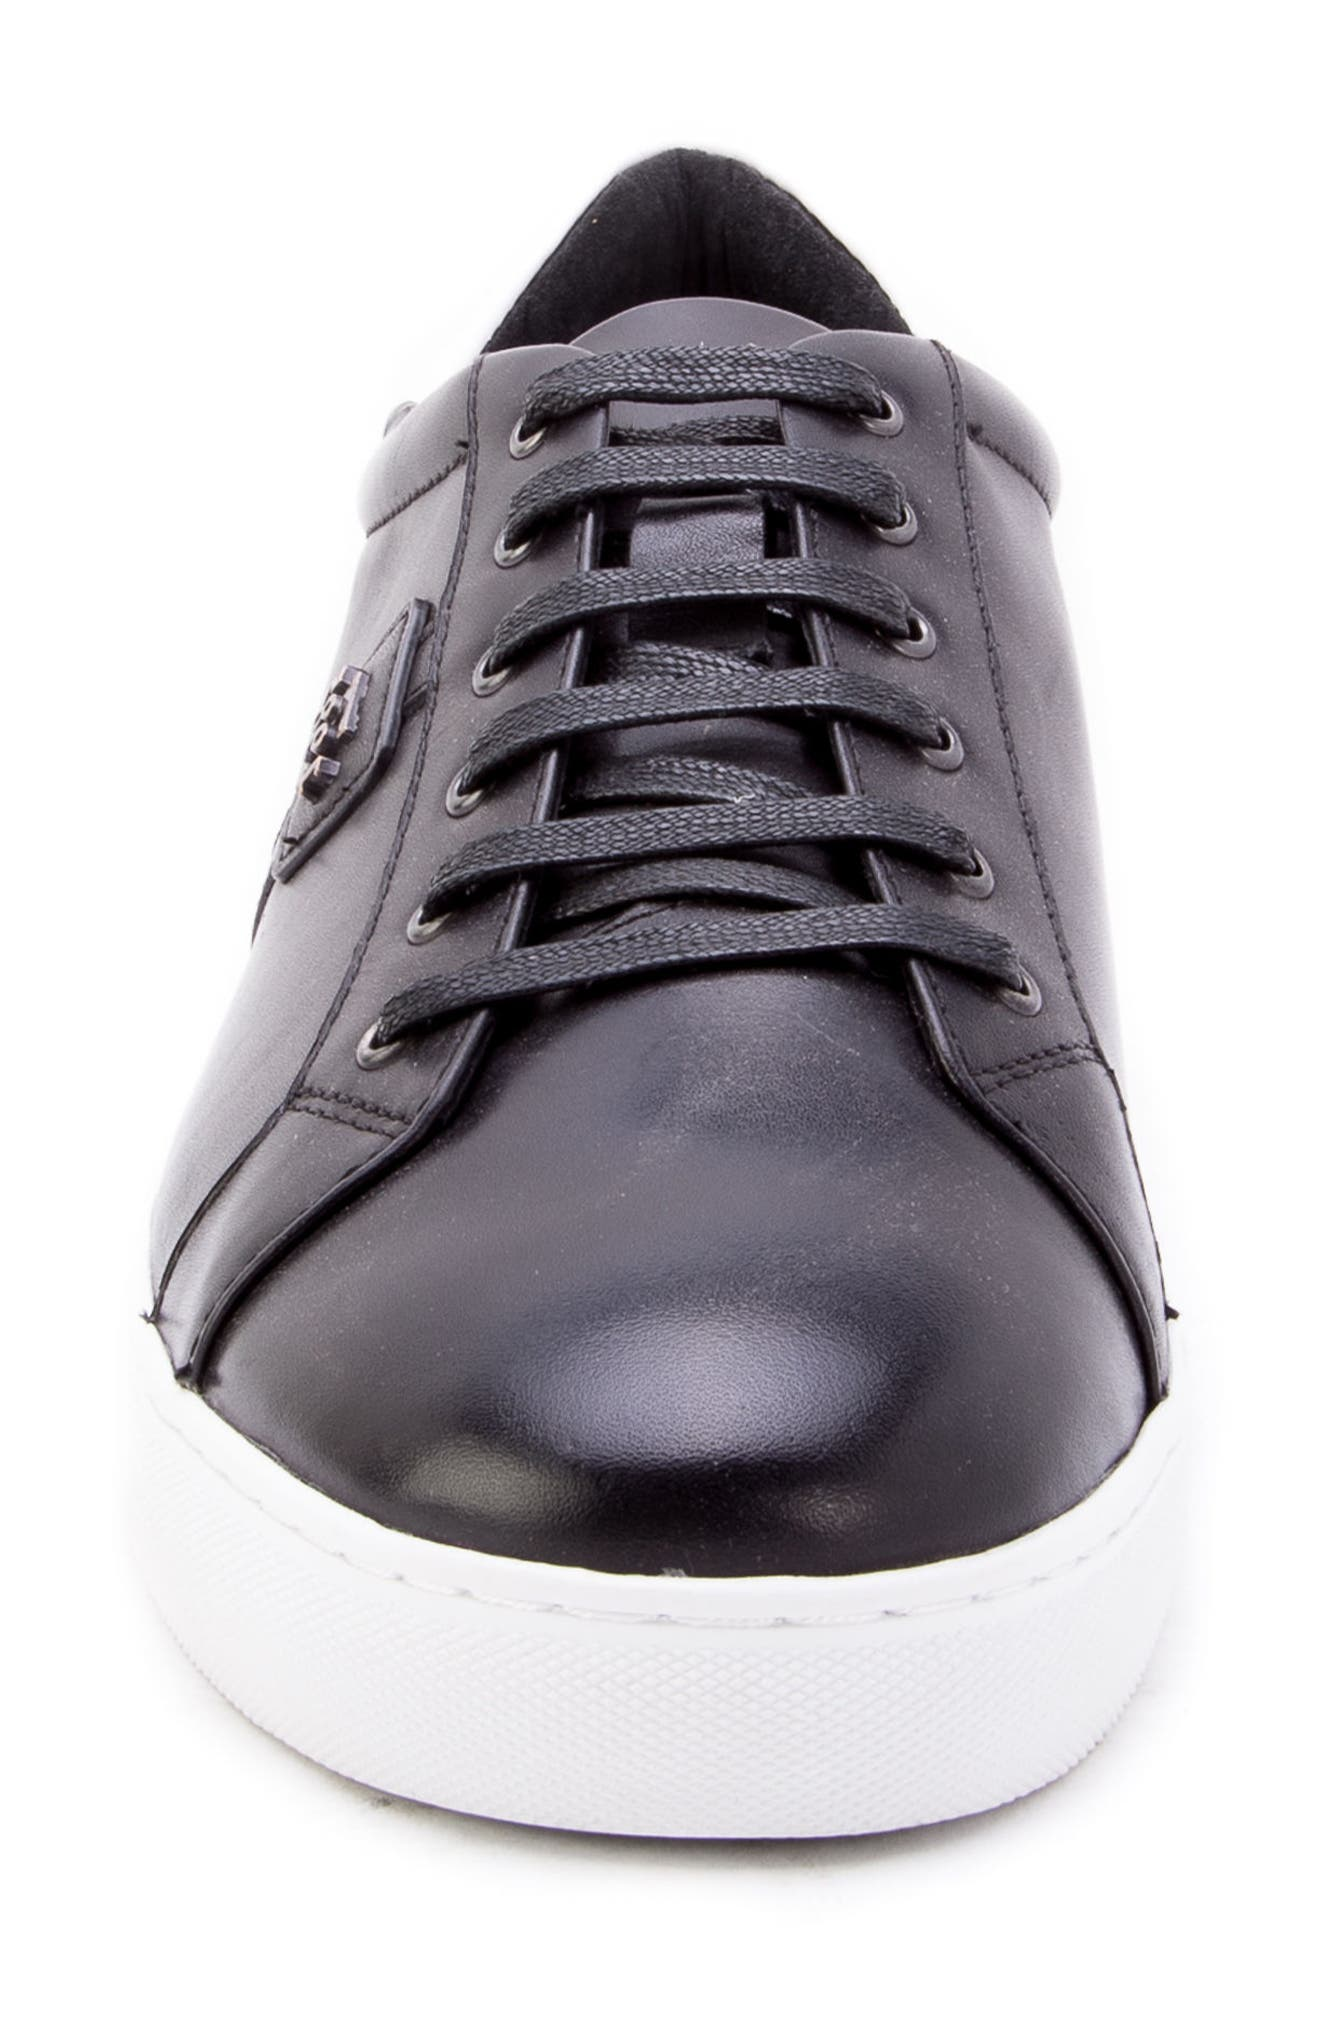 Scheffer Low Top Sneaker,                             Alternate thumbnail 4, color,                             BLACK LEATHER